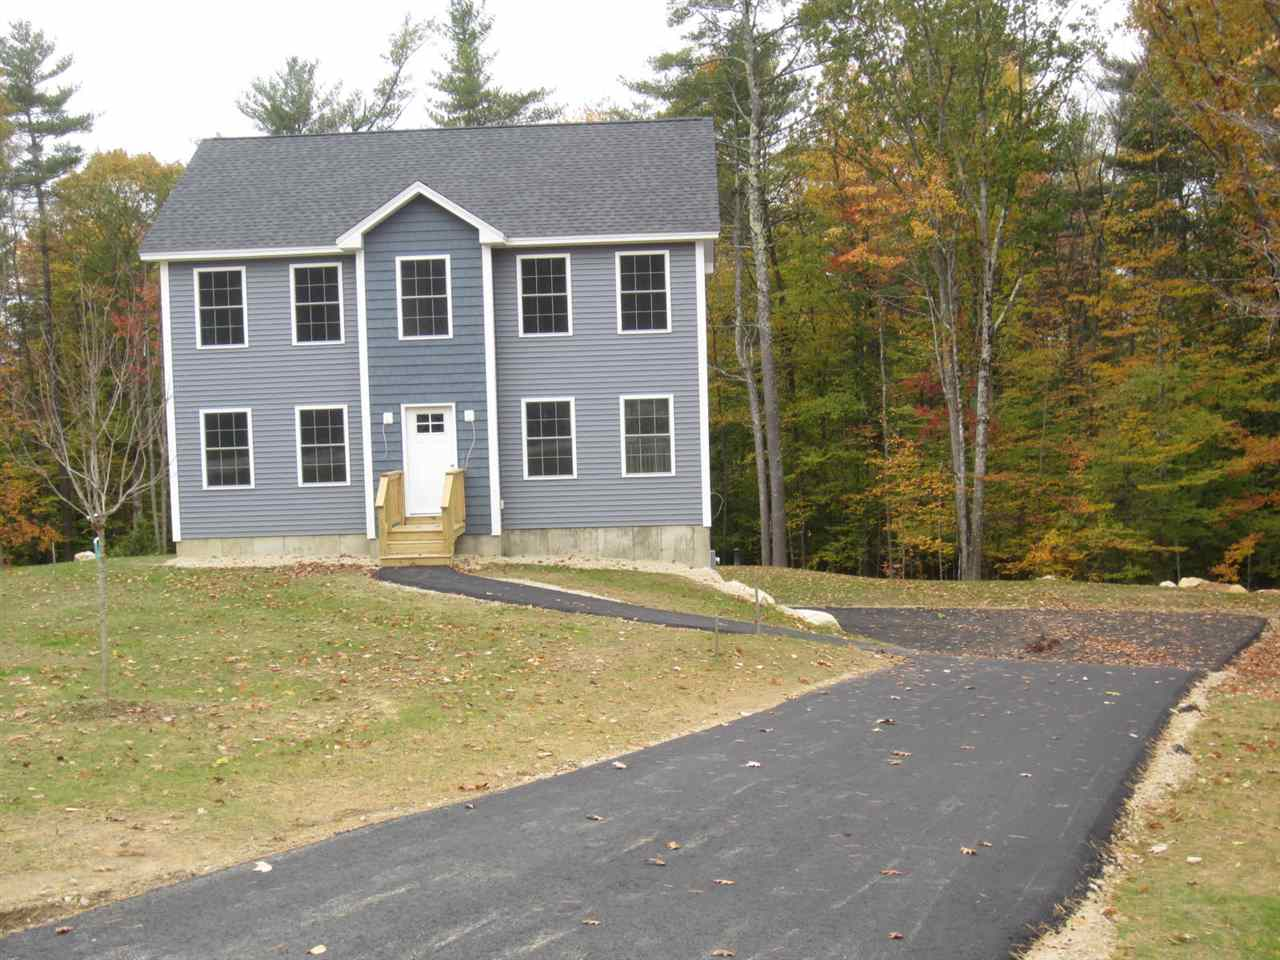 Photo of 17-6 Fieldstone Drive Deerfield NH 03037